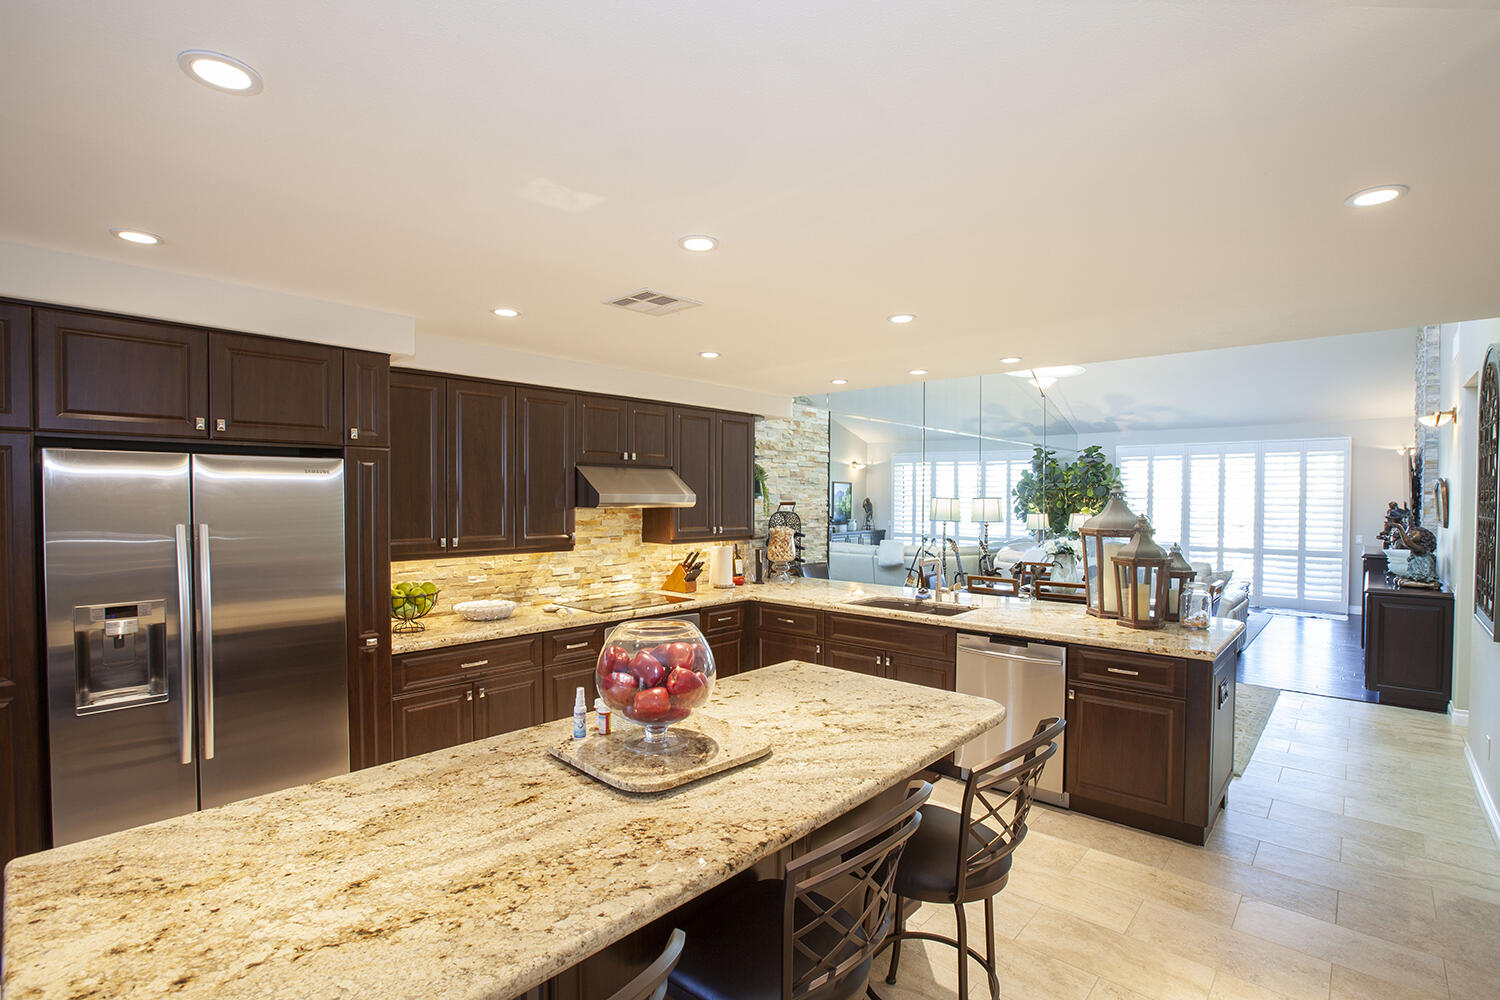 Everything about this beatiful condo will amaze you!  From the minute you see the pavers in the driveway, walkway and front courtyard to the open and spacious remodeled  condo.  No details have been missed.  This is a Palm Plan with 2 bedroom, 2 baths and a den or office that has been remodeled with high quality cabinets, fixtures,stone work, granite and stainless steel appliances in the kitchen.   The bathrooms feel like you're at a spa.  The living room is comfortable and has a beautiful electric fireplace for you to enjoy.  You can relax on your private courtyard patio that has a sail for shade and a top of the line BBQ for you to prepare wonderful meals for friends and family OR enjoy the fairway patio with endless views of the golf course, mountains and our beautiful blue skies.  This home is perfect for a full-time resident or a weekend get-away.  Palm Valley has so much to offer:  2 Ted Robertson golf courses, a 100,000 sq. ft. clubhouse, a day spa, fitness center, tennis and pickleball courts, 46 swimming pools and so much more.  Come take a look at your new desert home!!!